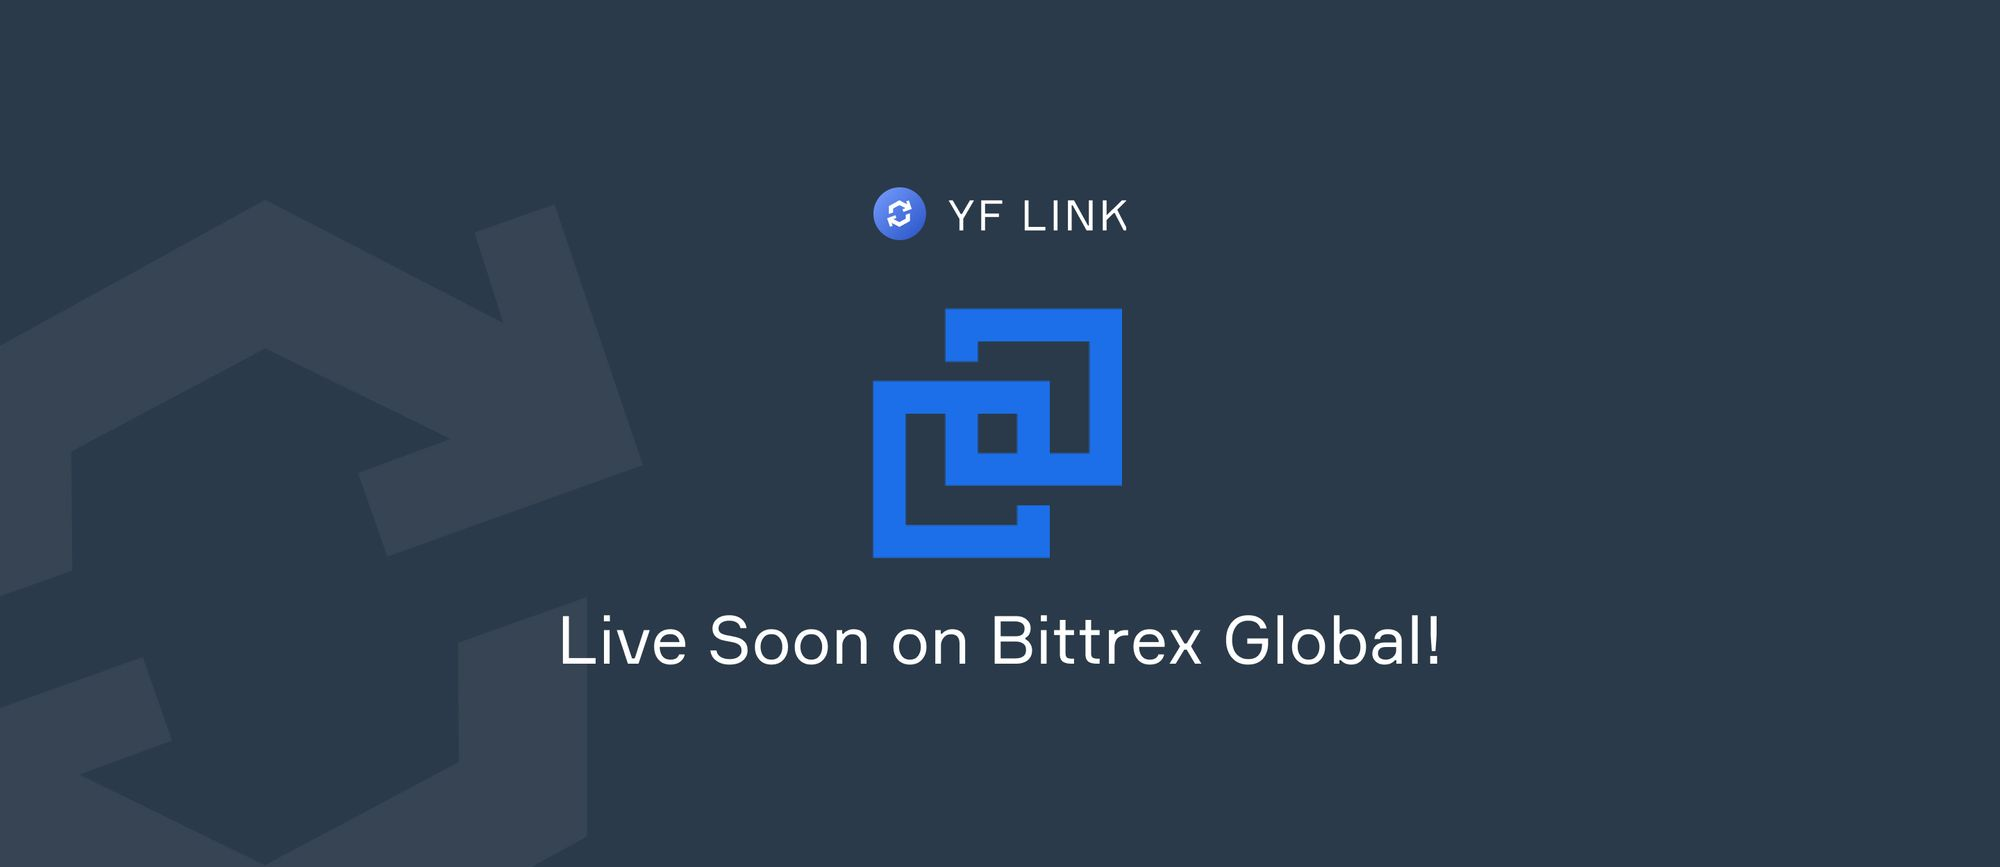 YF Link Trading on Bittrex Global!